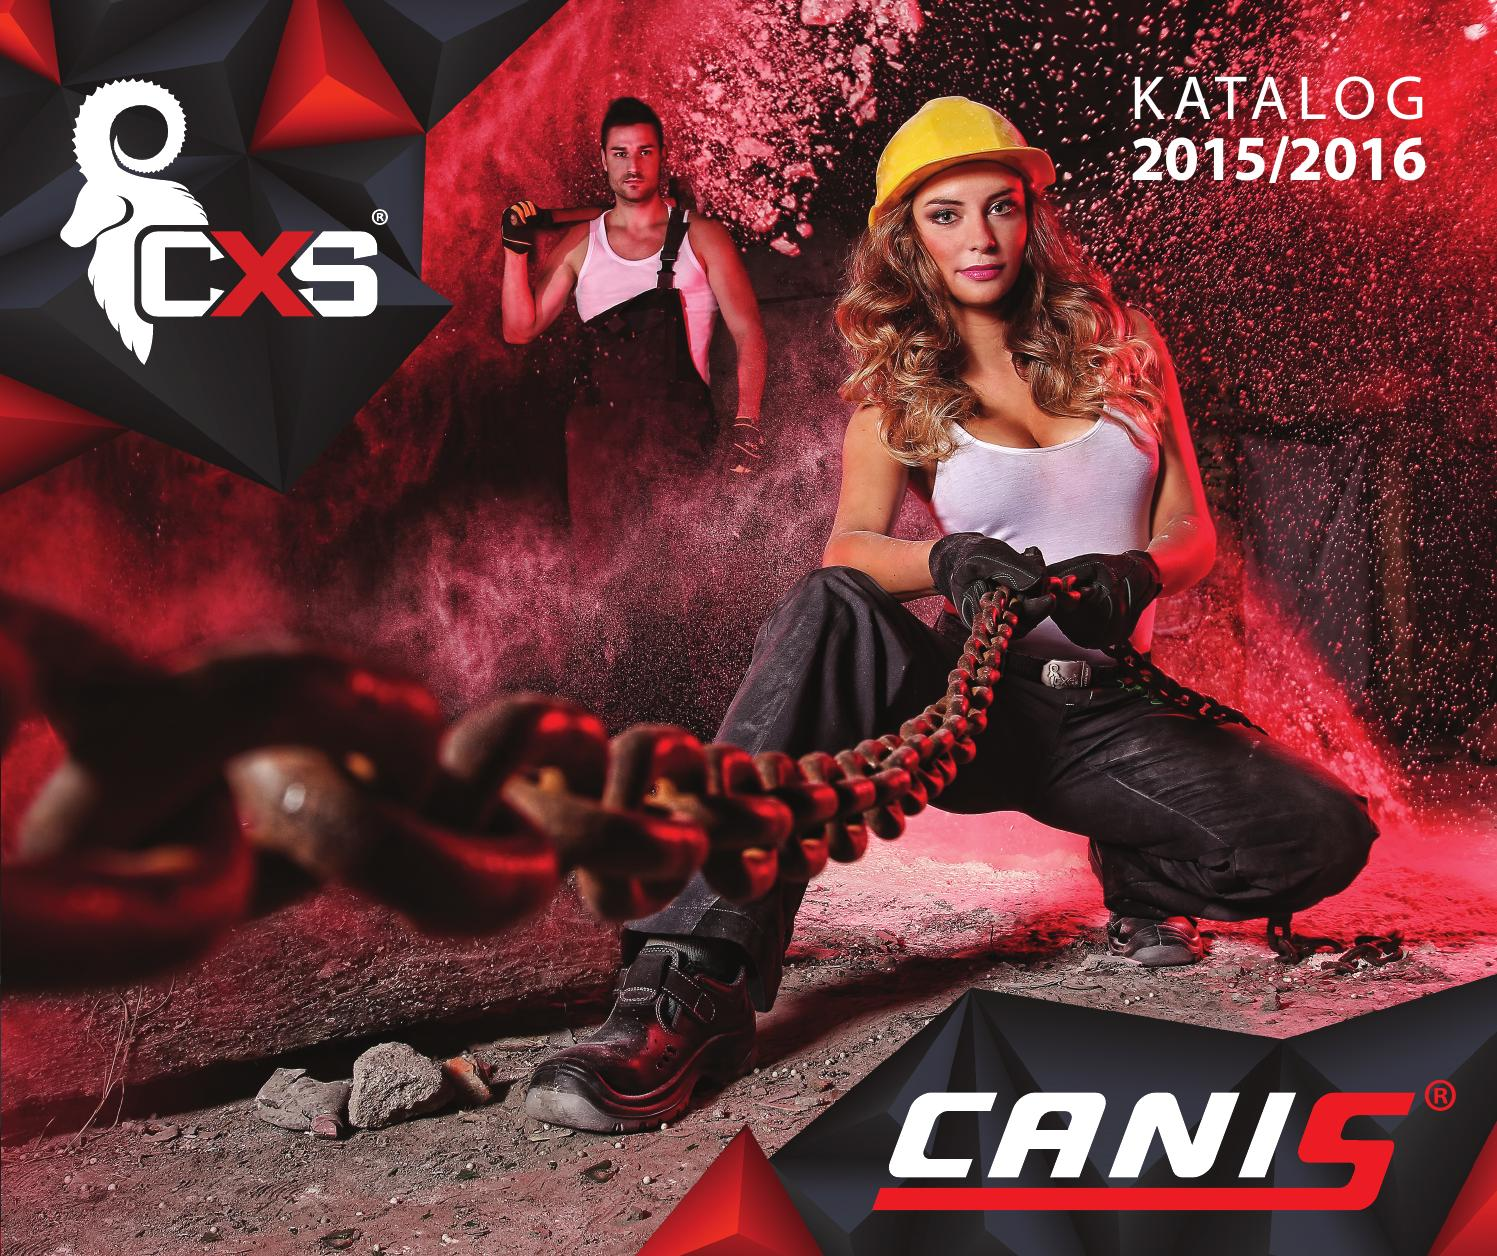 Katalog Canis Safety a.s. by canis - issuu 64a3fb4215